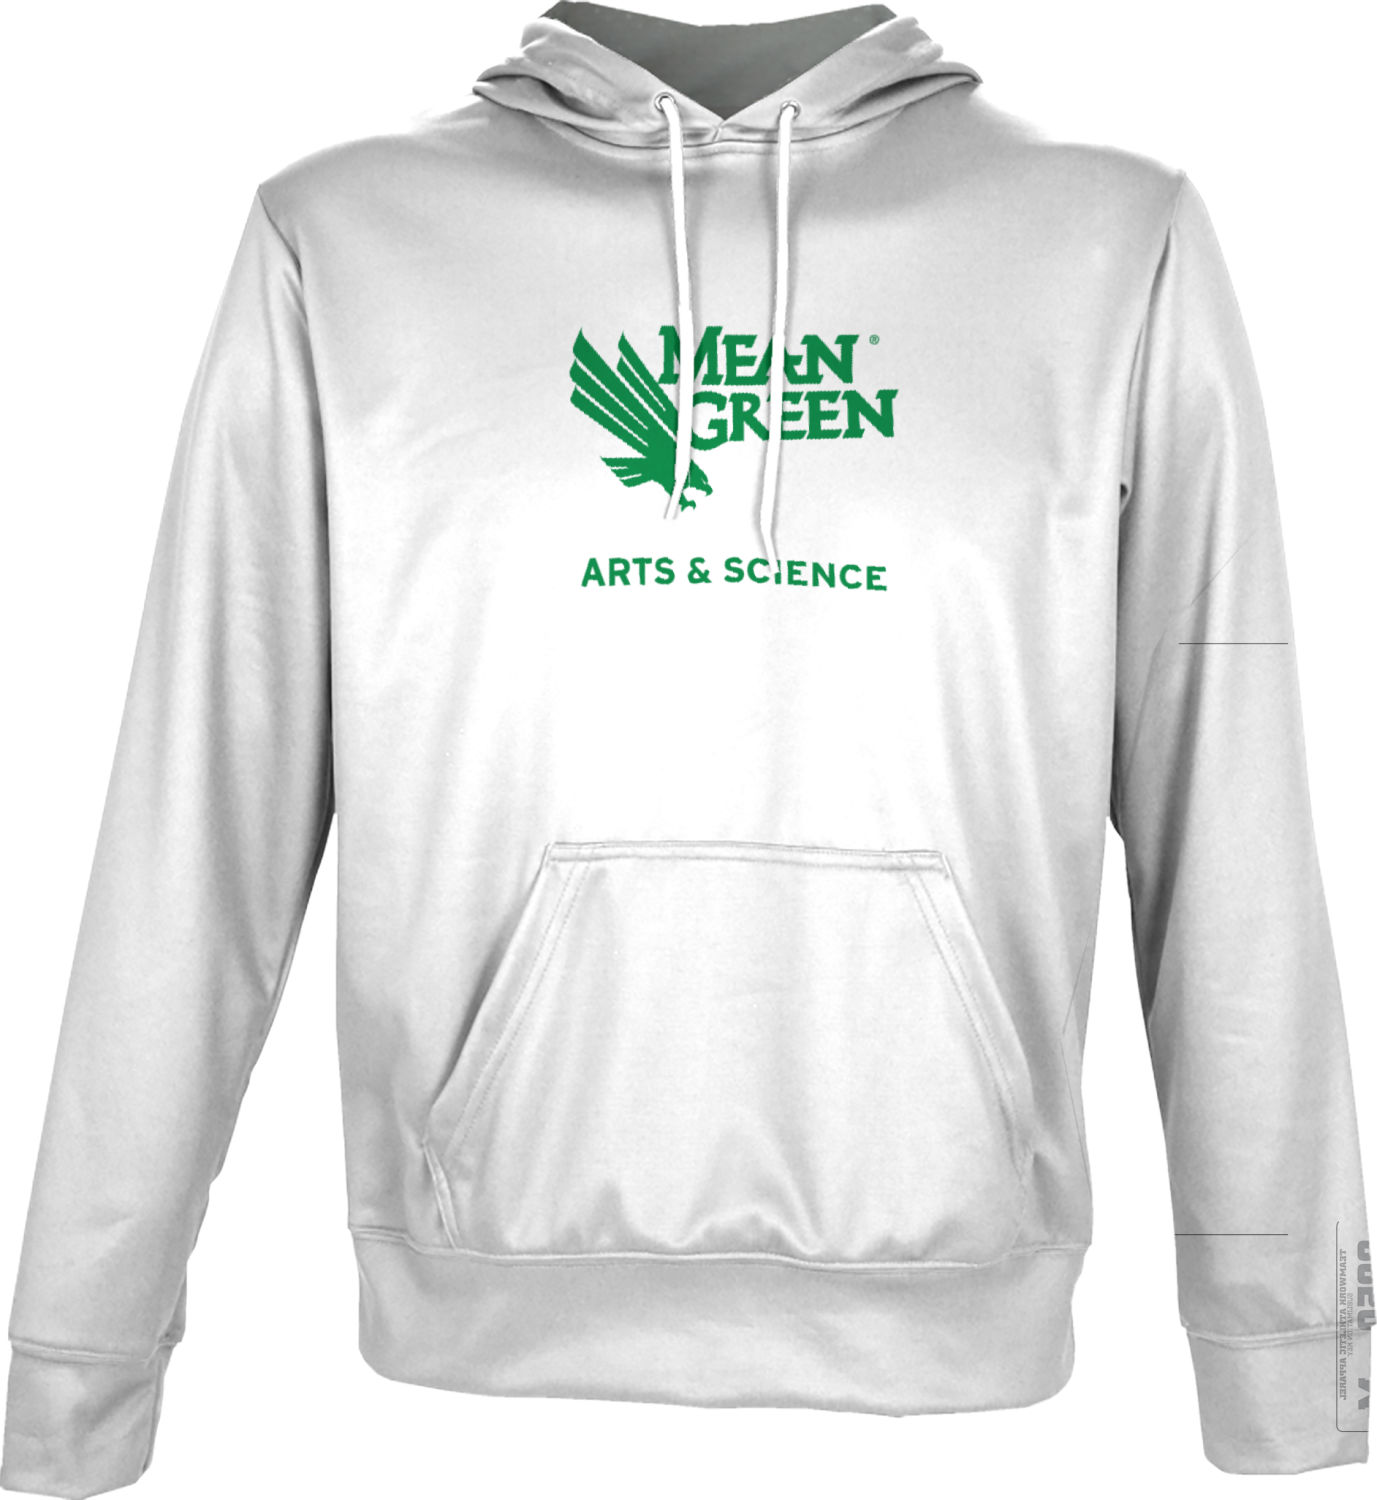 Youth Spectrum Pullover Hoodie - Arts and Science